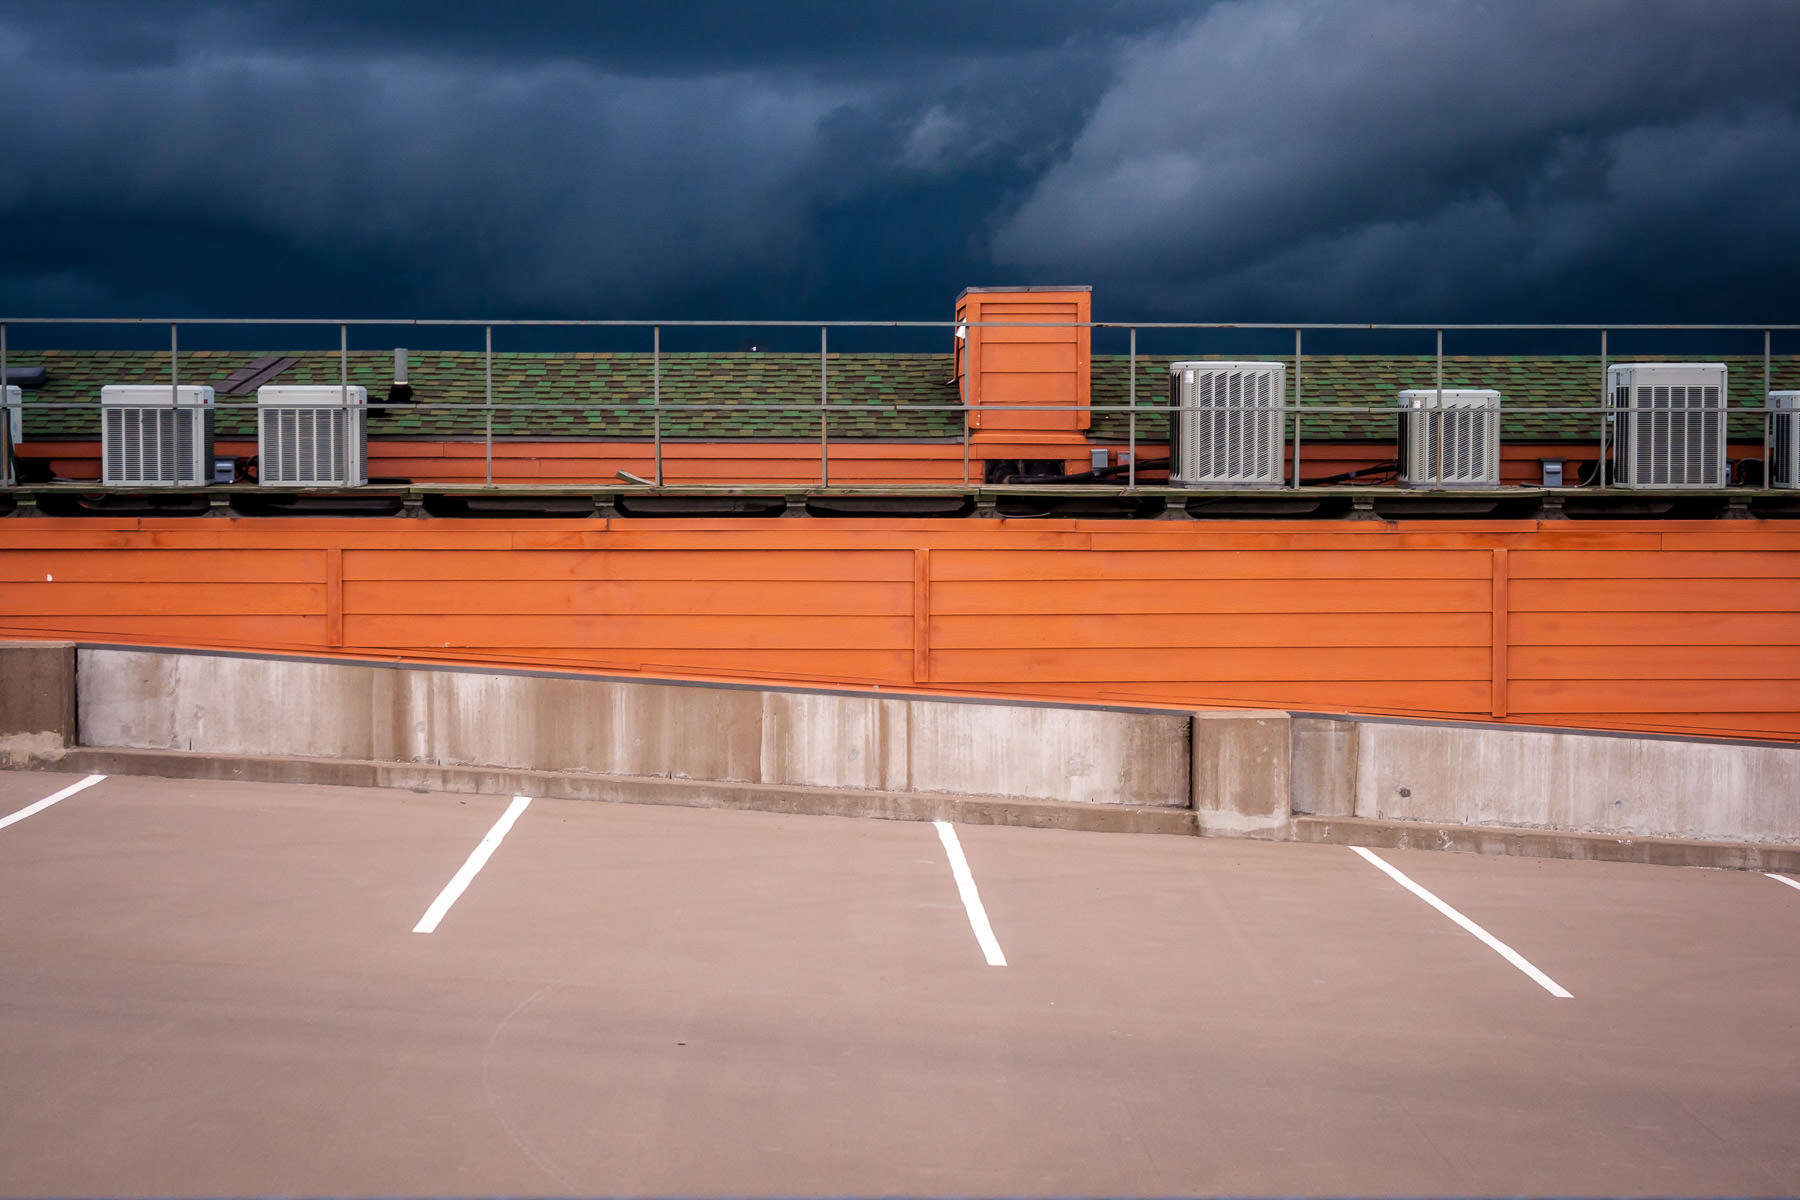 Storm clouds rolling into Collin County, as seen from the Eastside Village parking garage in Downtown Plano, Texas.